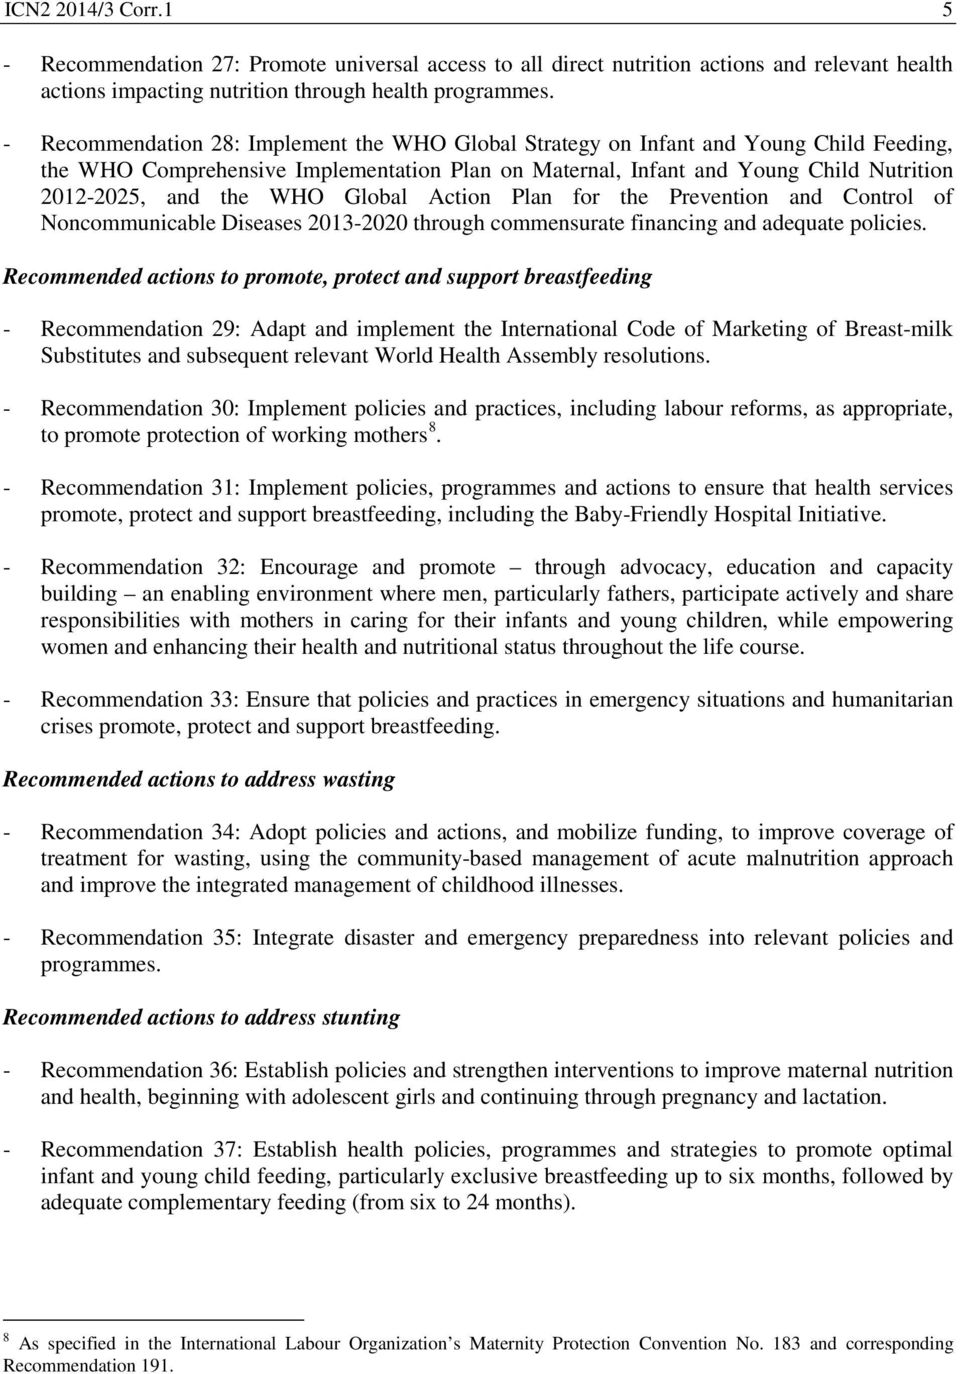 WHO Global Action Plan for the Prevention and Control of Noncommunicable Diseases 2013-2020 through commensurate financing and adequate policies.